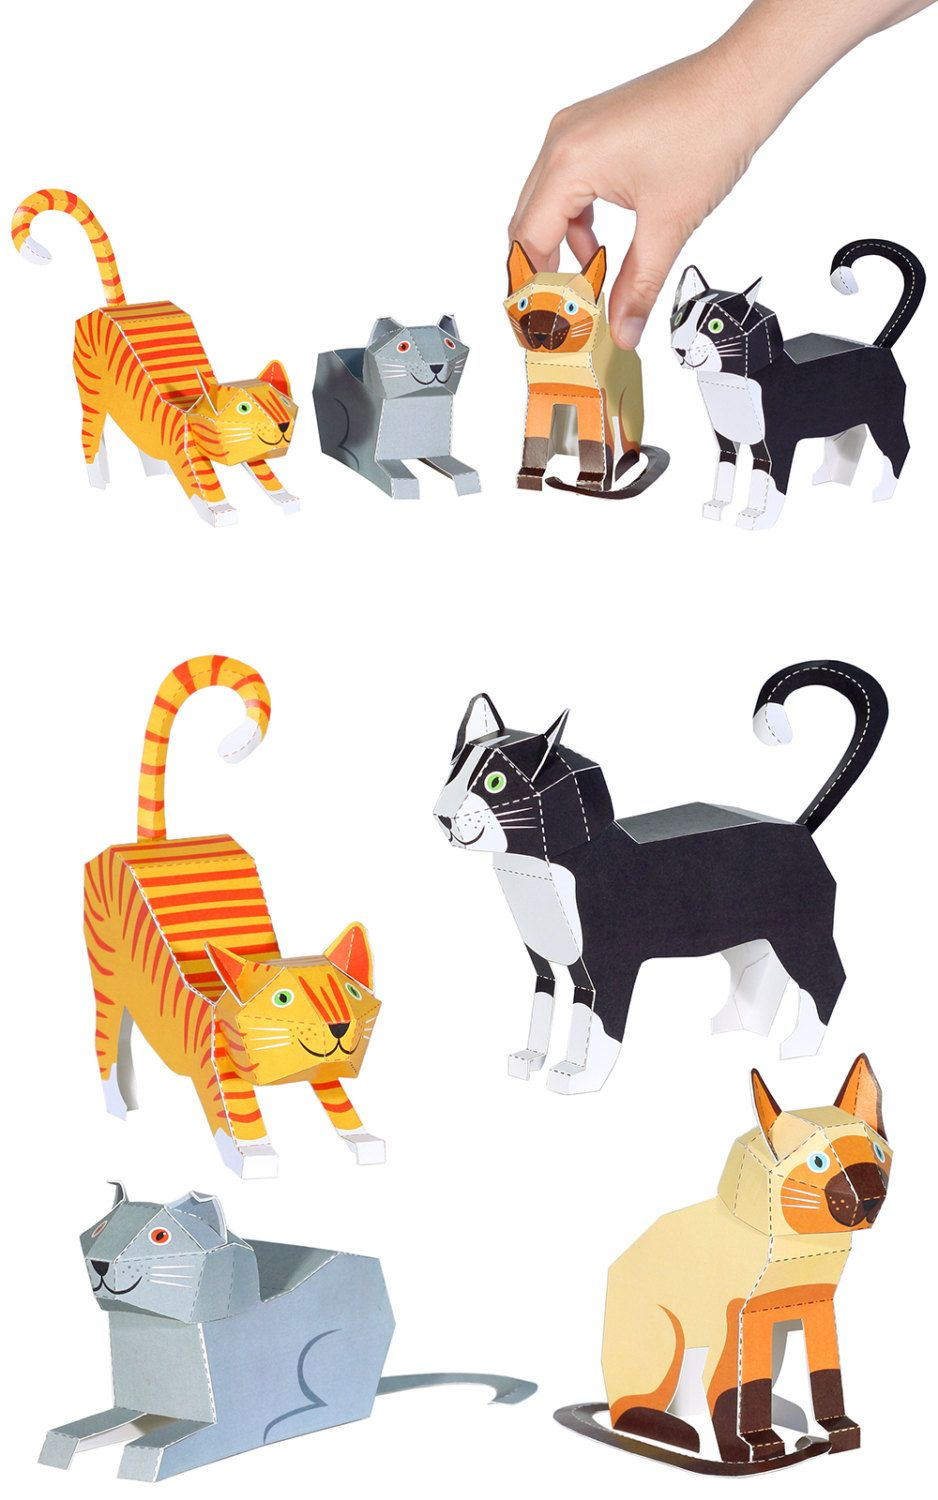 Canon Creative Park paper toys: printouts that come to life in the hands